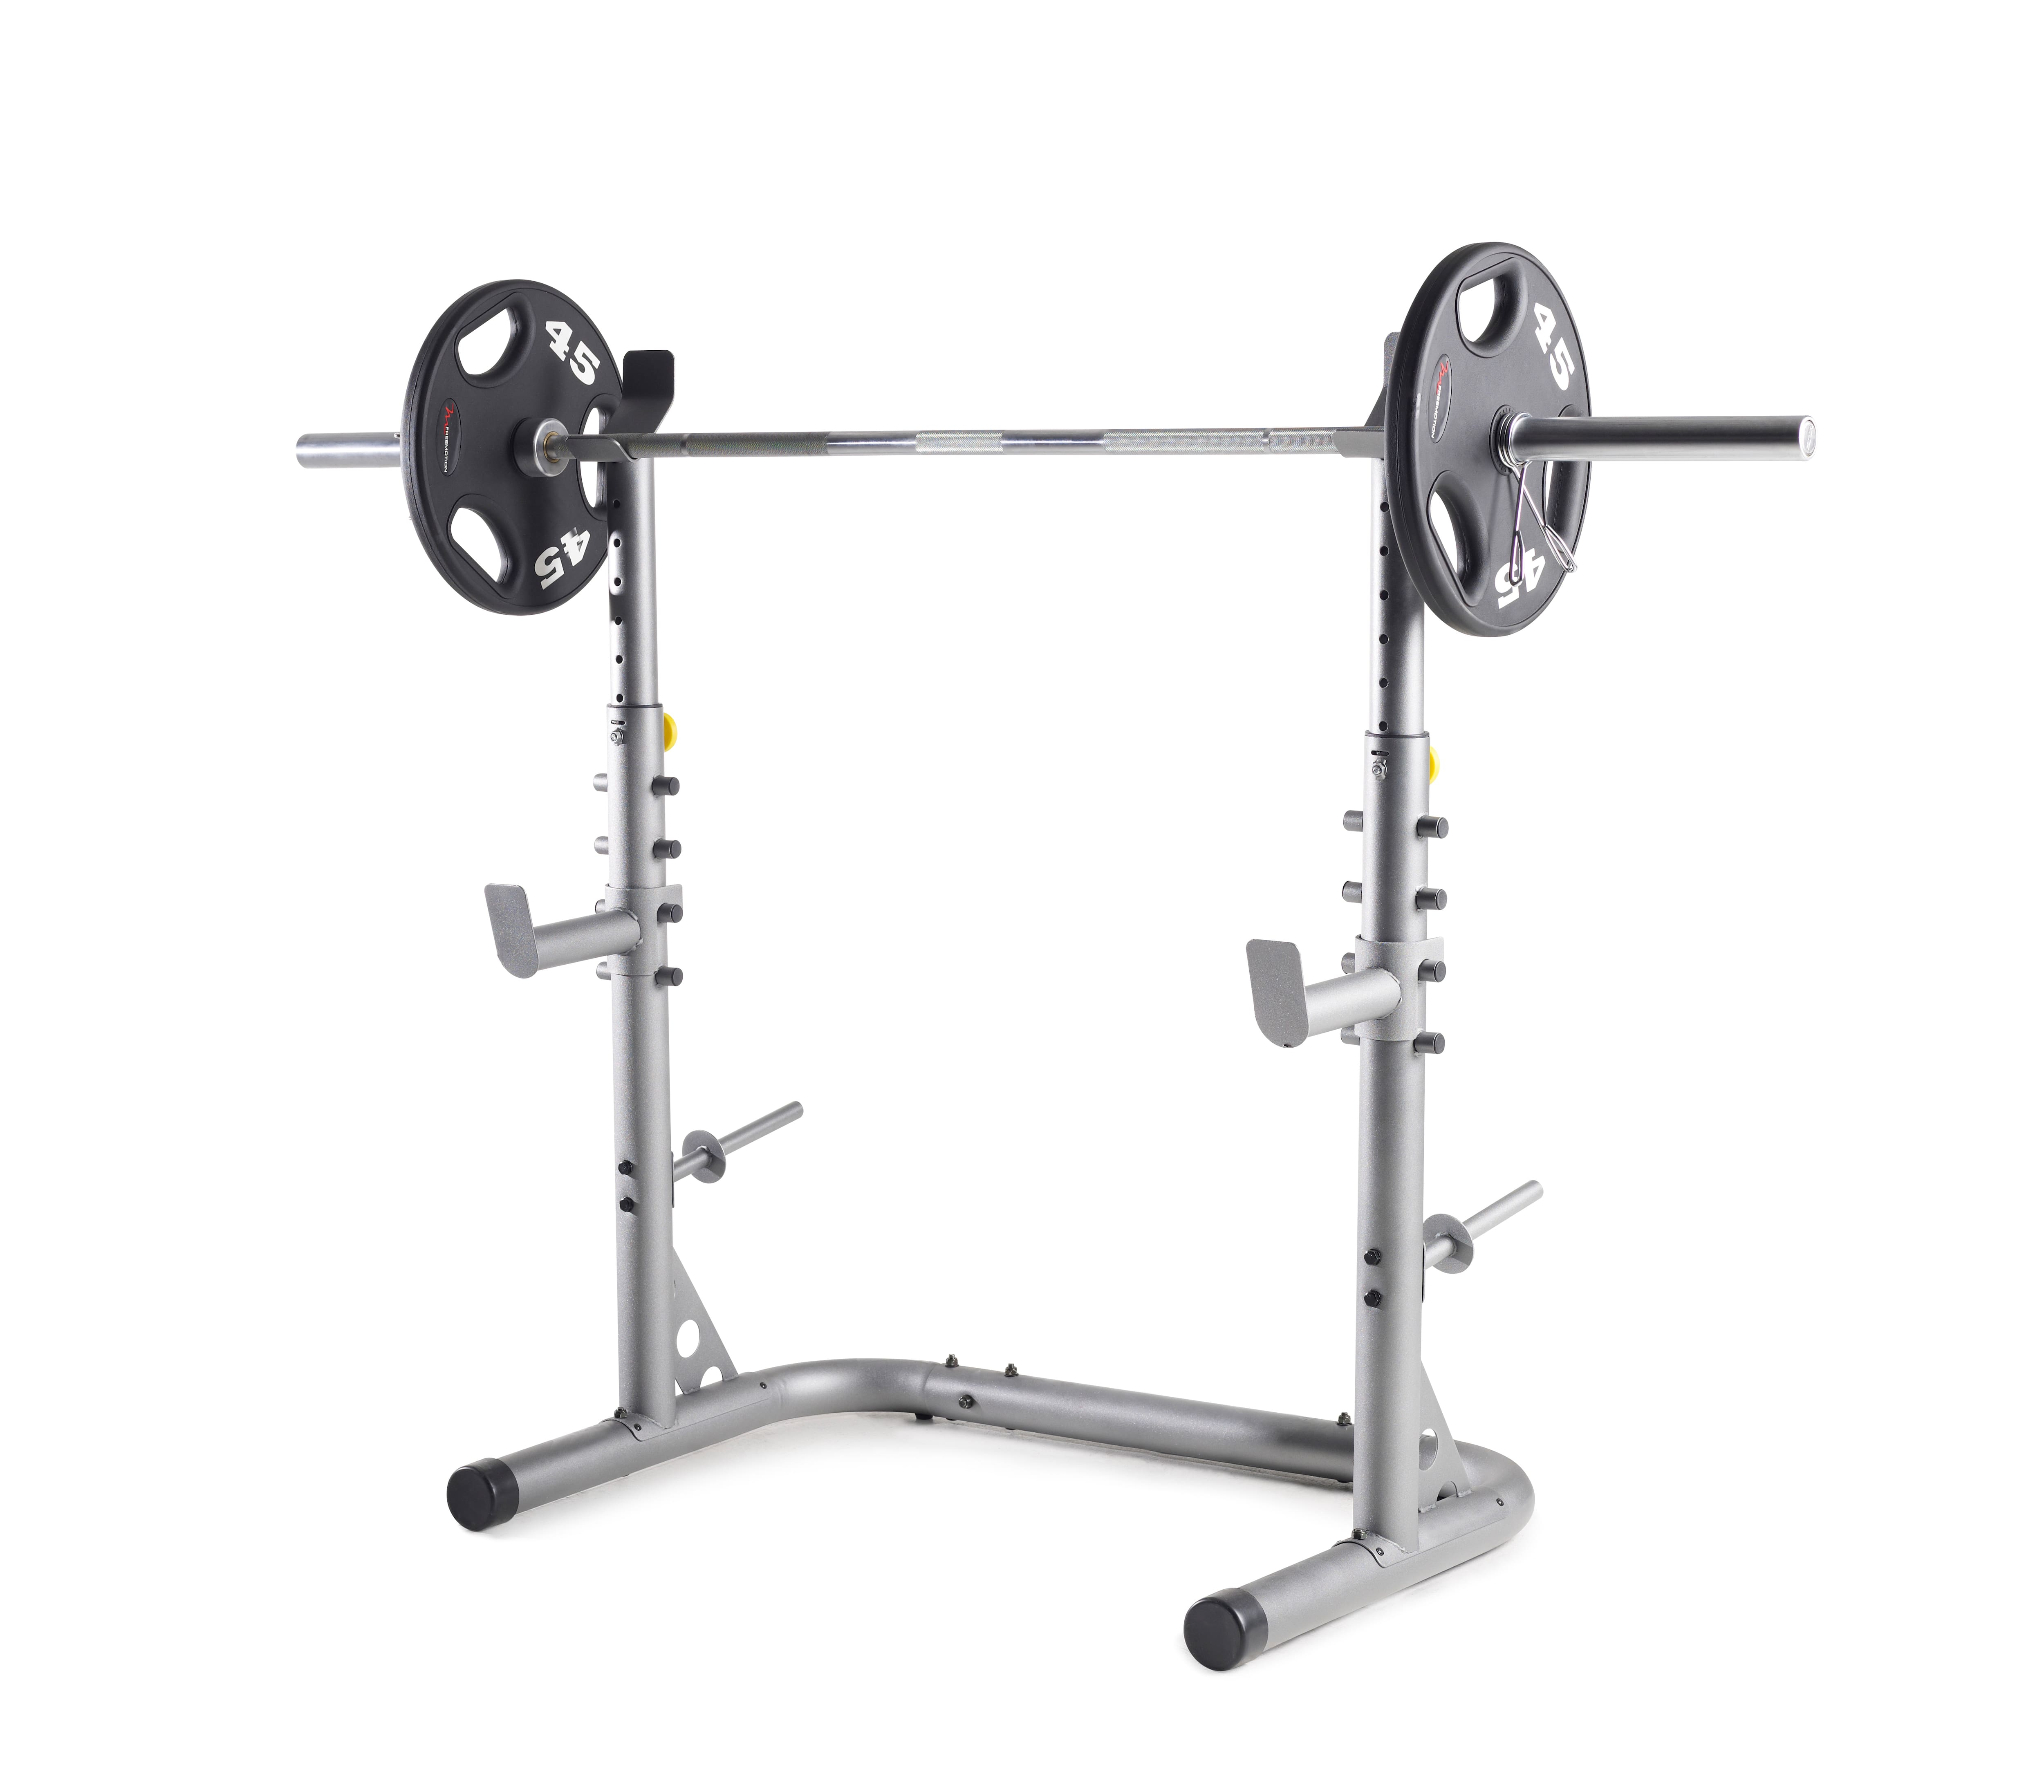 Weider Xrs 20 Olympic Squat Rack With Adjustable Safety Spotters And Bar Holds 97 Slickdeals Net